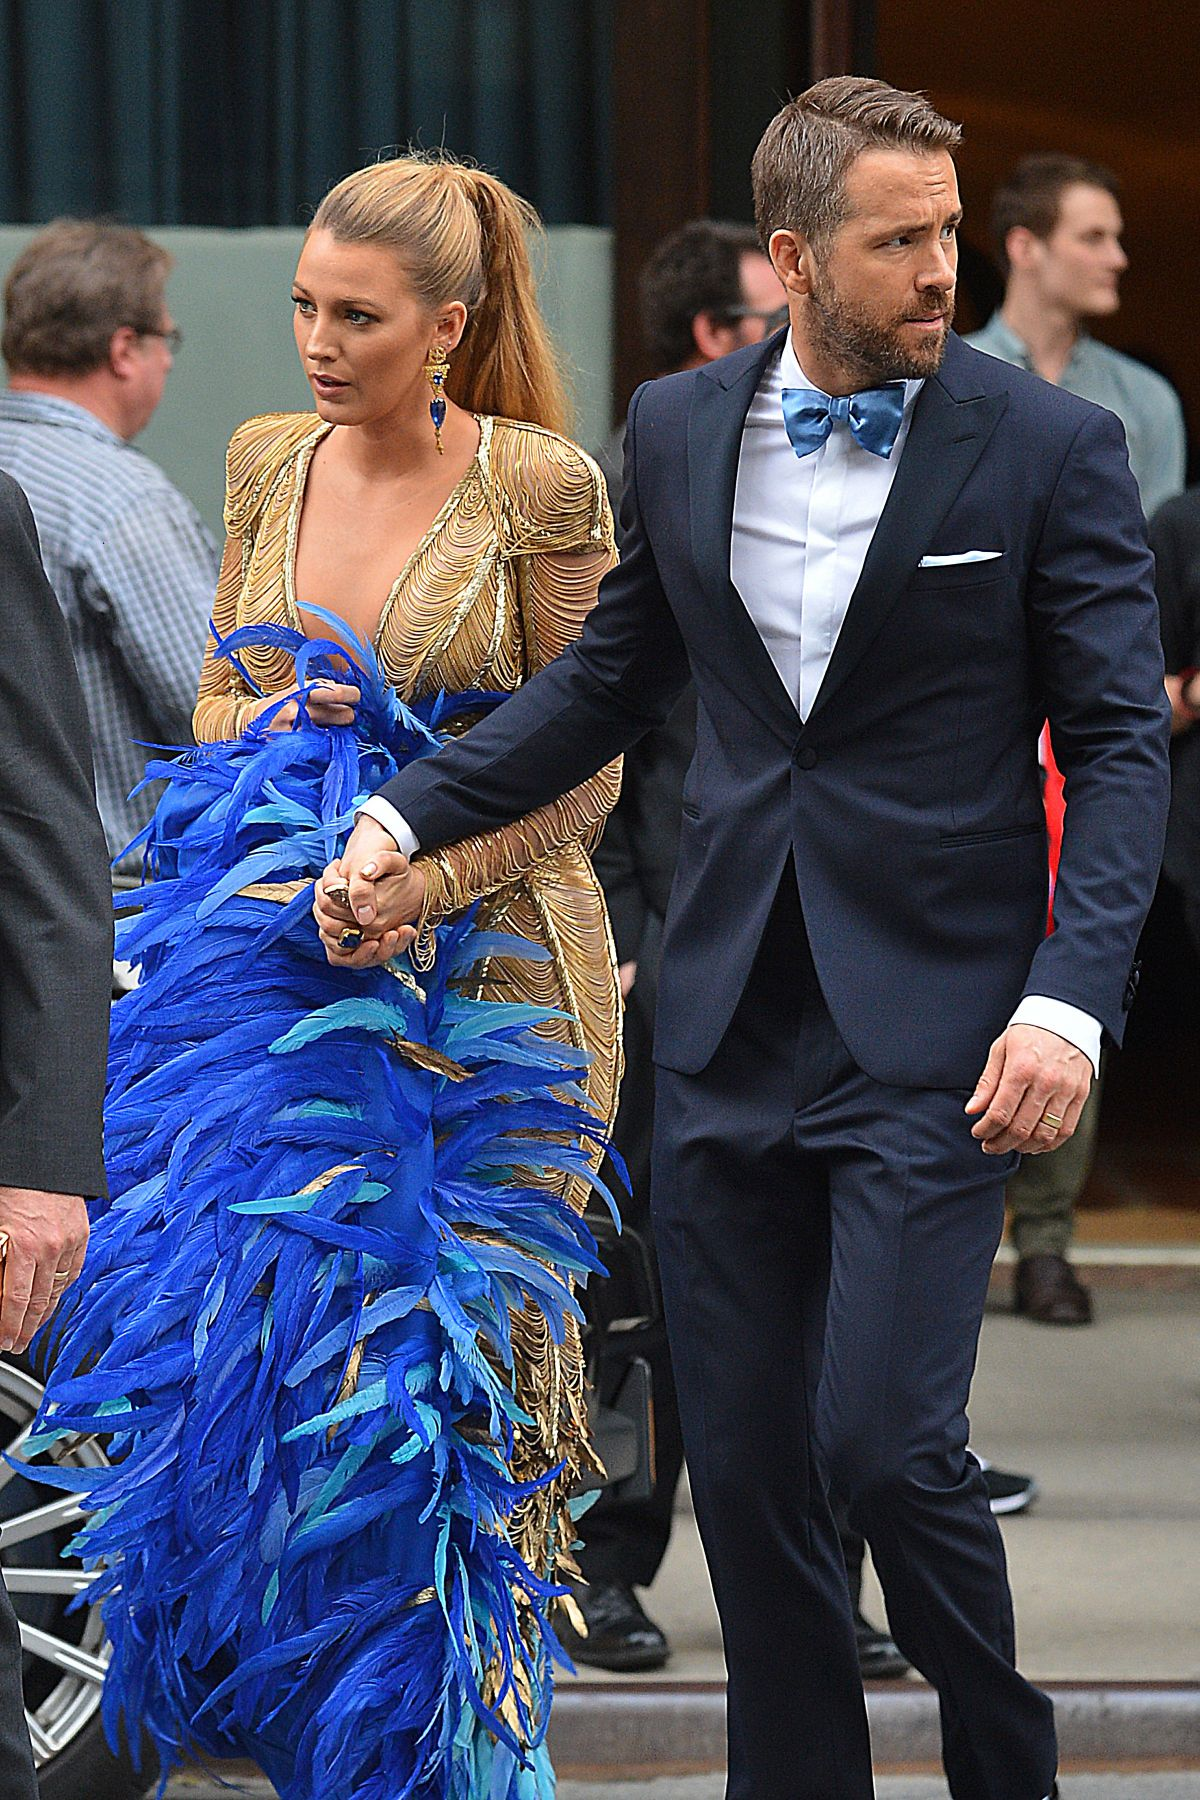 blake lively dating 2017 This psychodrama from marc forster stars blake lively and jason clarke as a seemingly happy married couple 'all i see is you 2017.